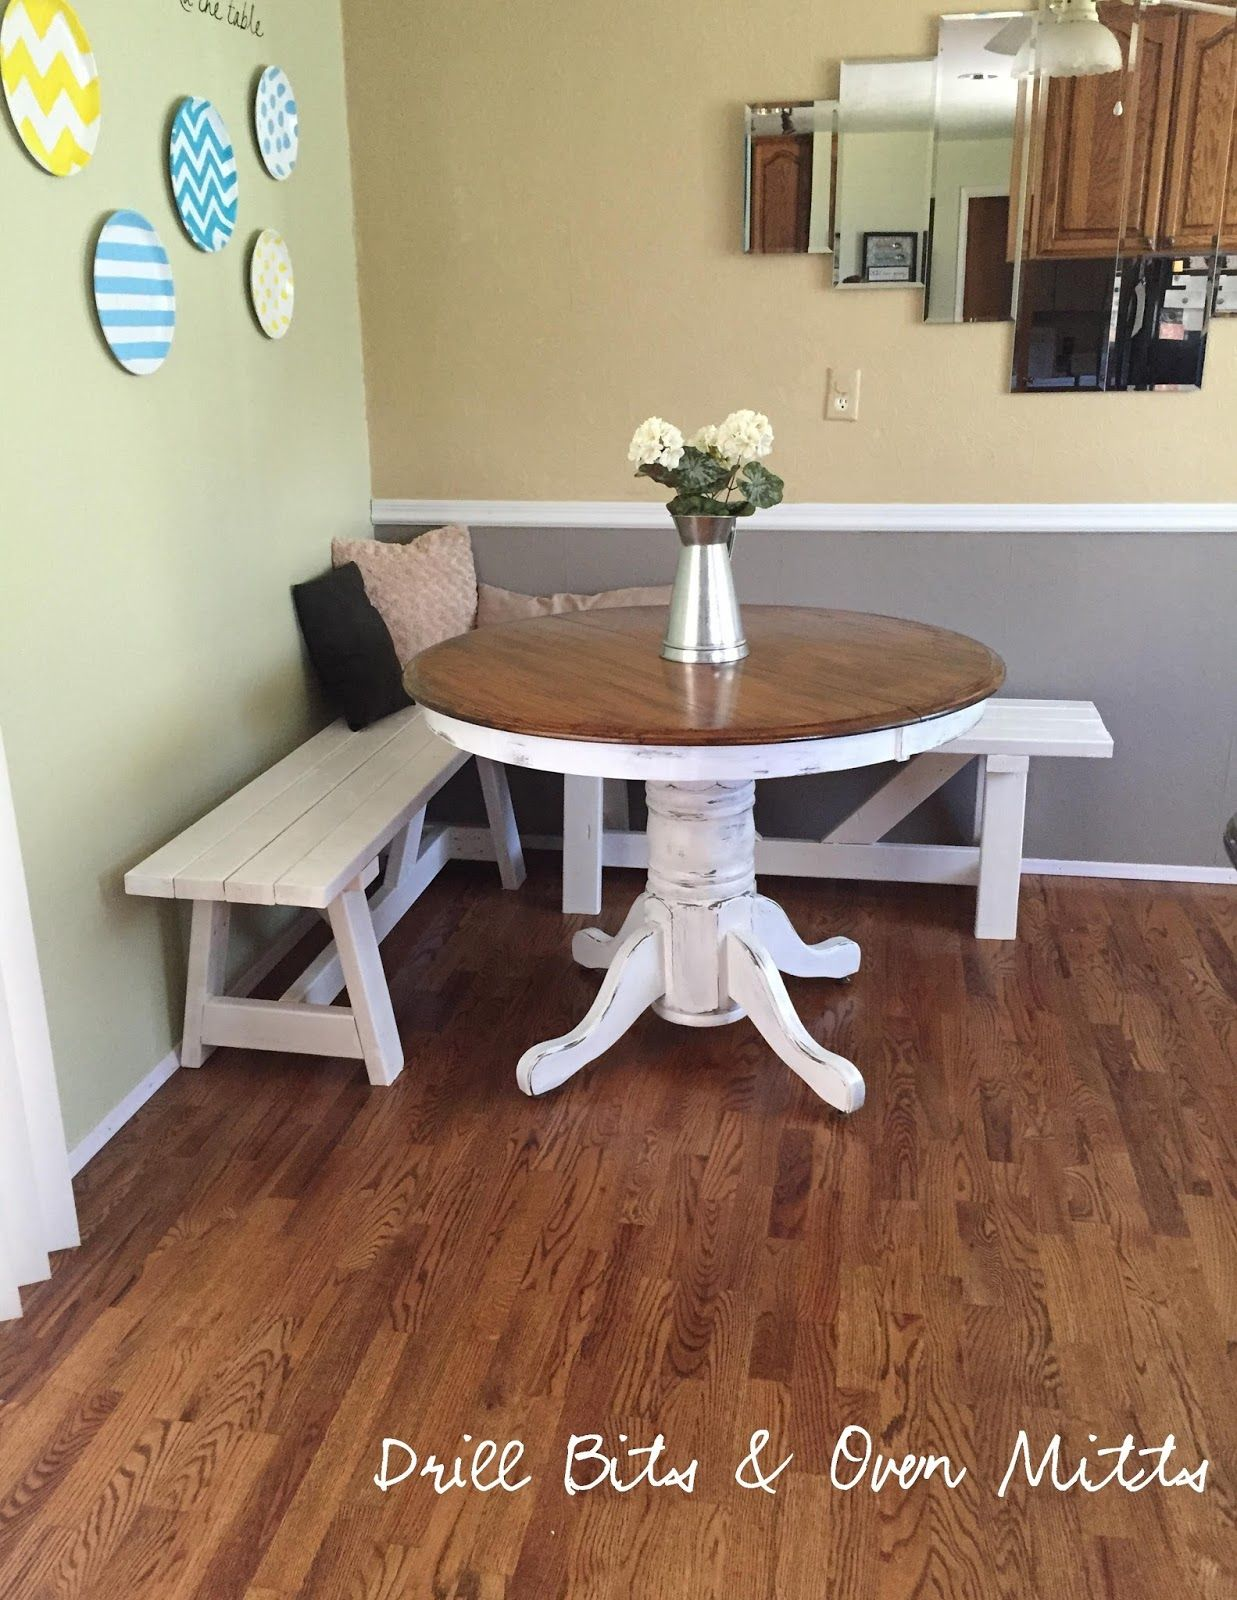 For A Small Room You Can Use A Set Of Furniture That Prioritizes Function Such As Multi Kitchen Corner Bench Seating Kitchen Table Bench Corner Bench Seating